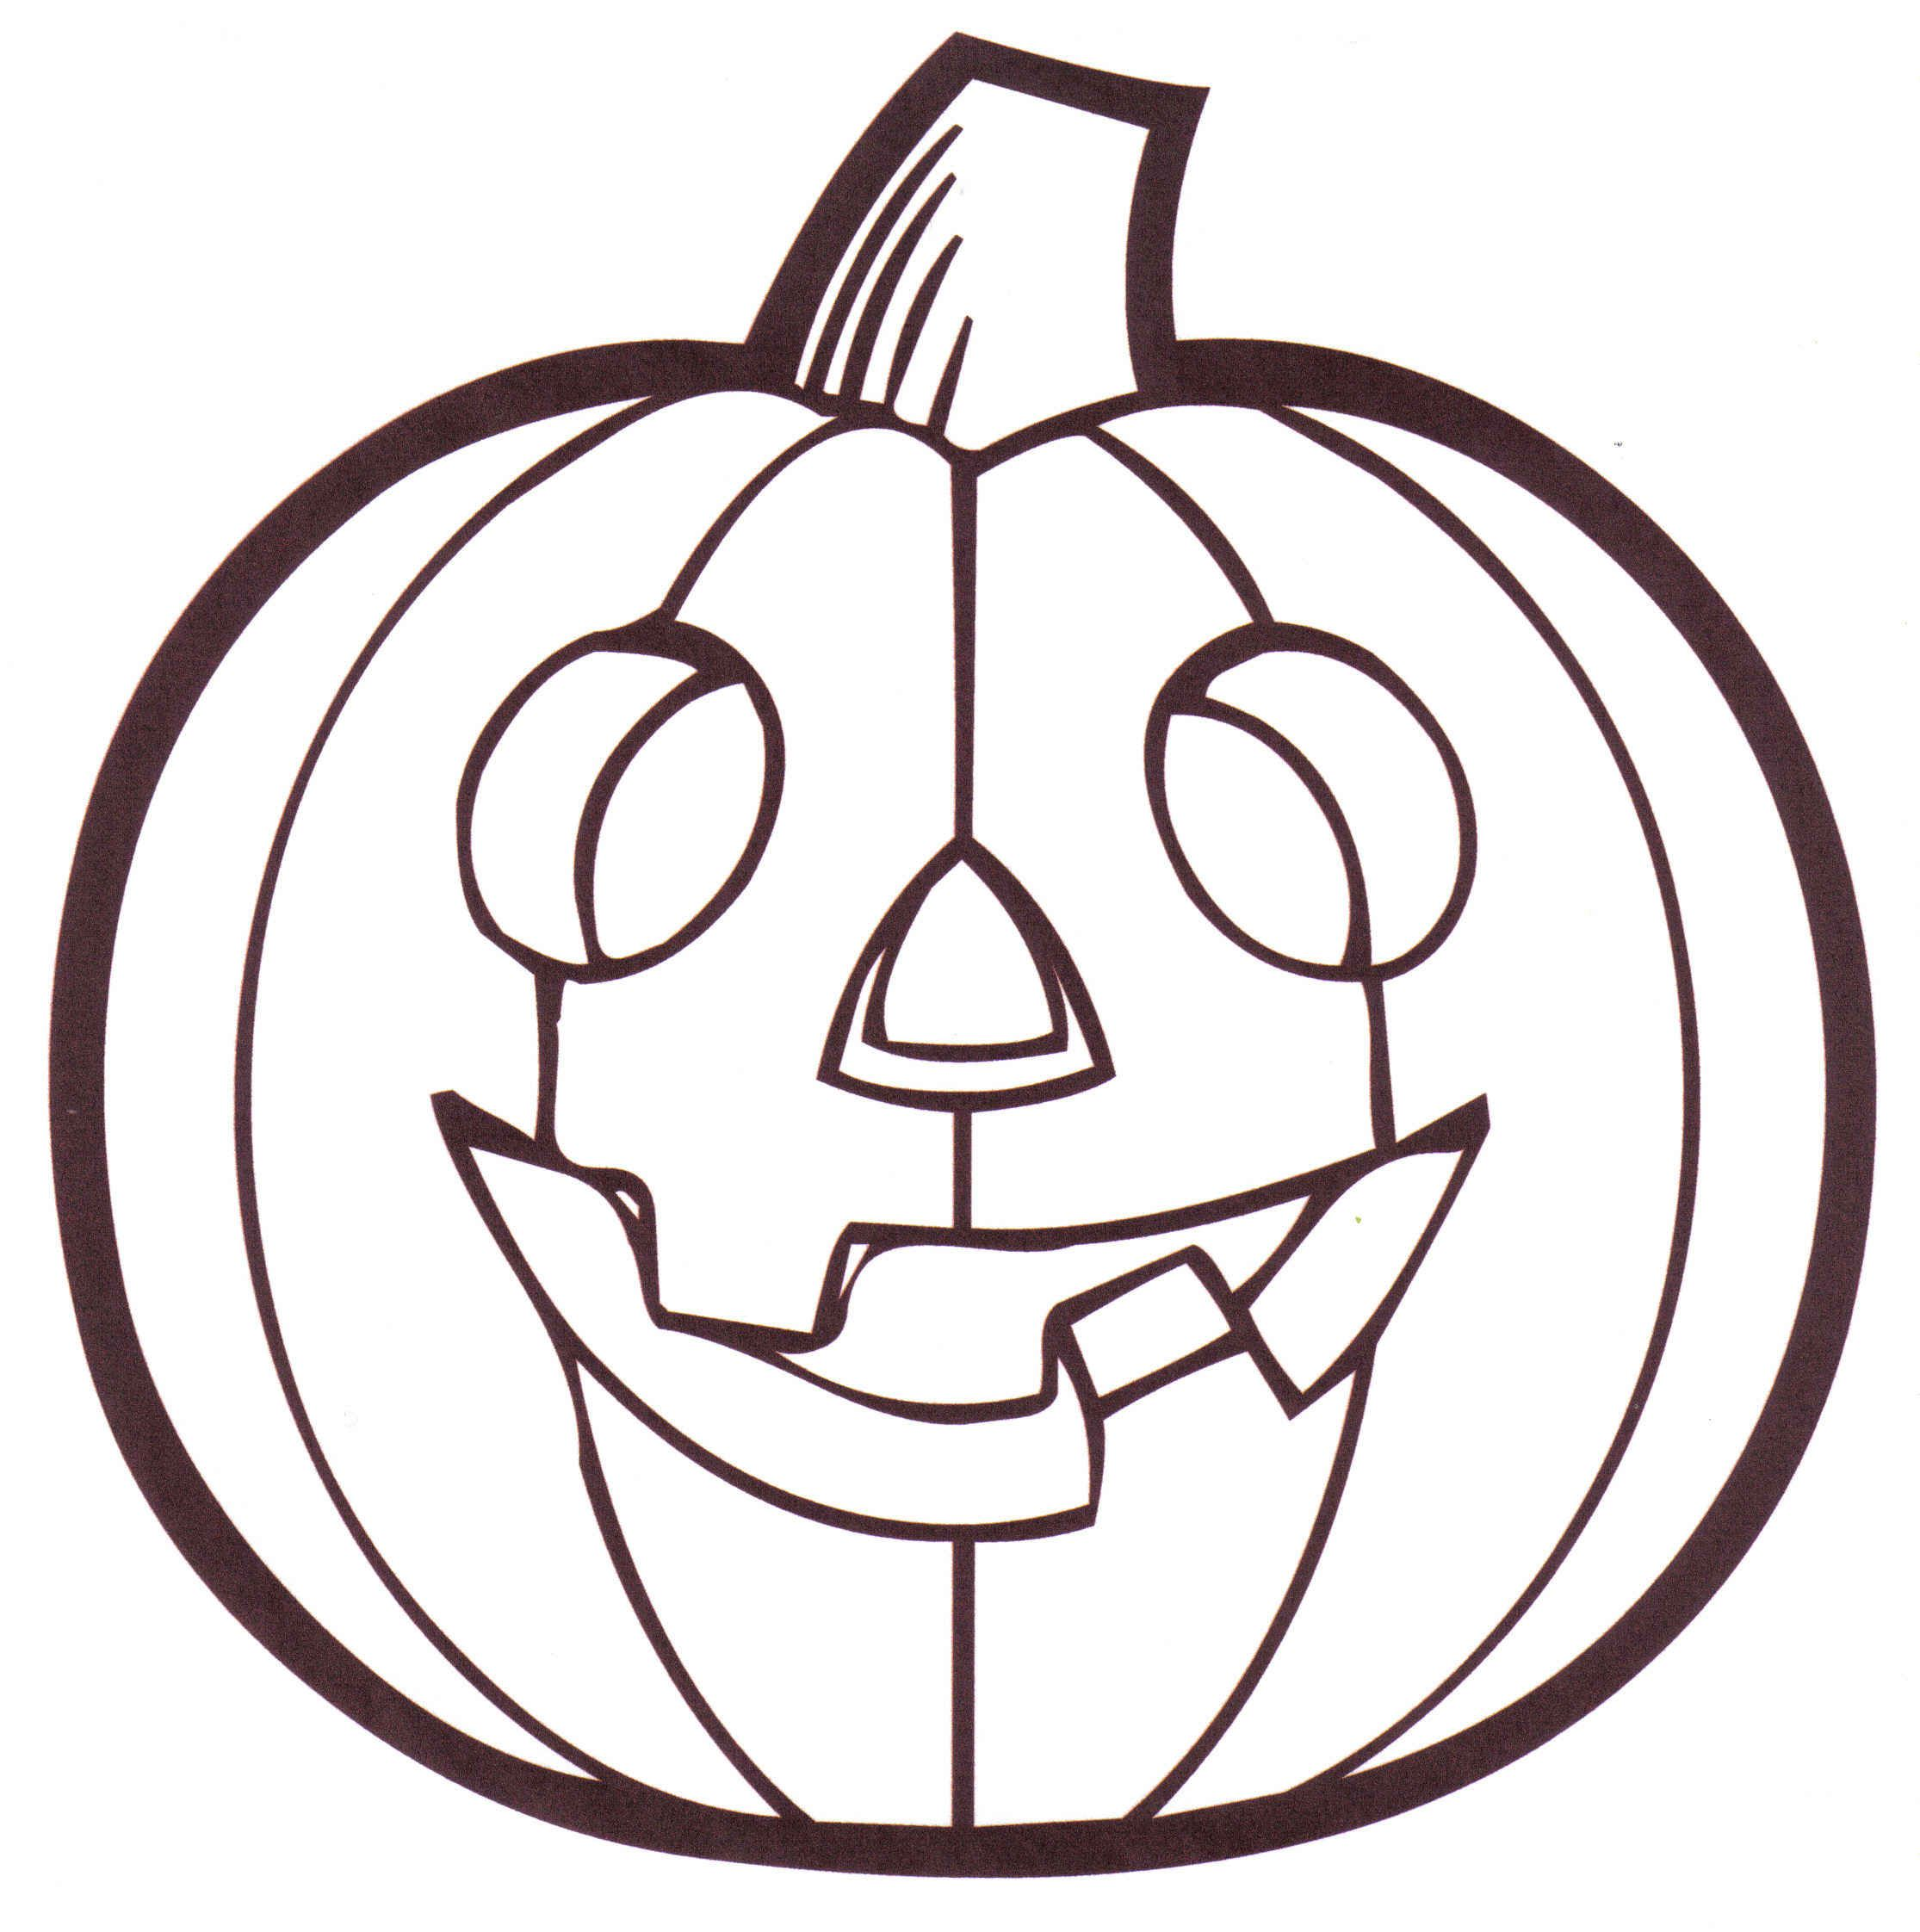 Free Pumpkin Outline Printable, Download Free Clip Art, Free.